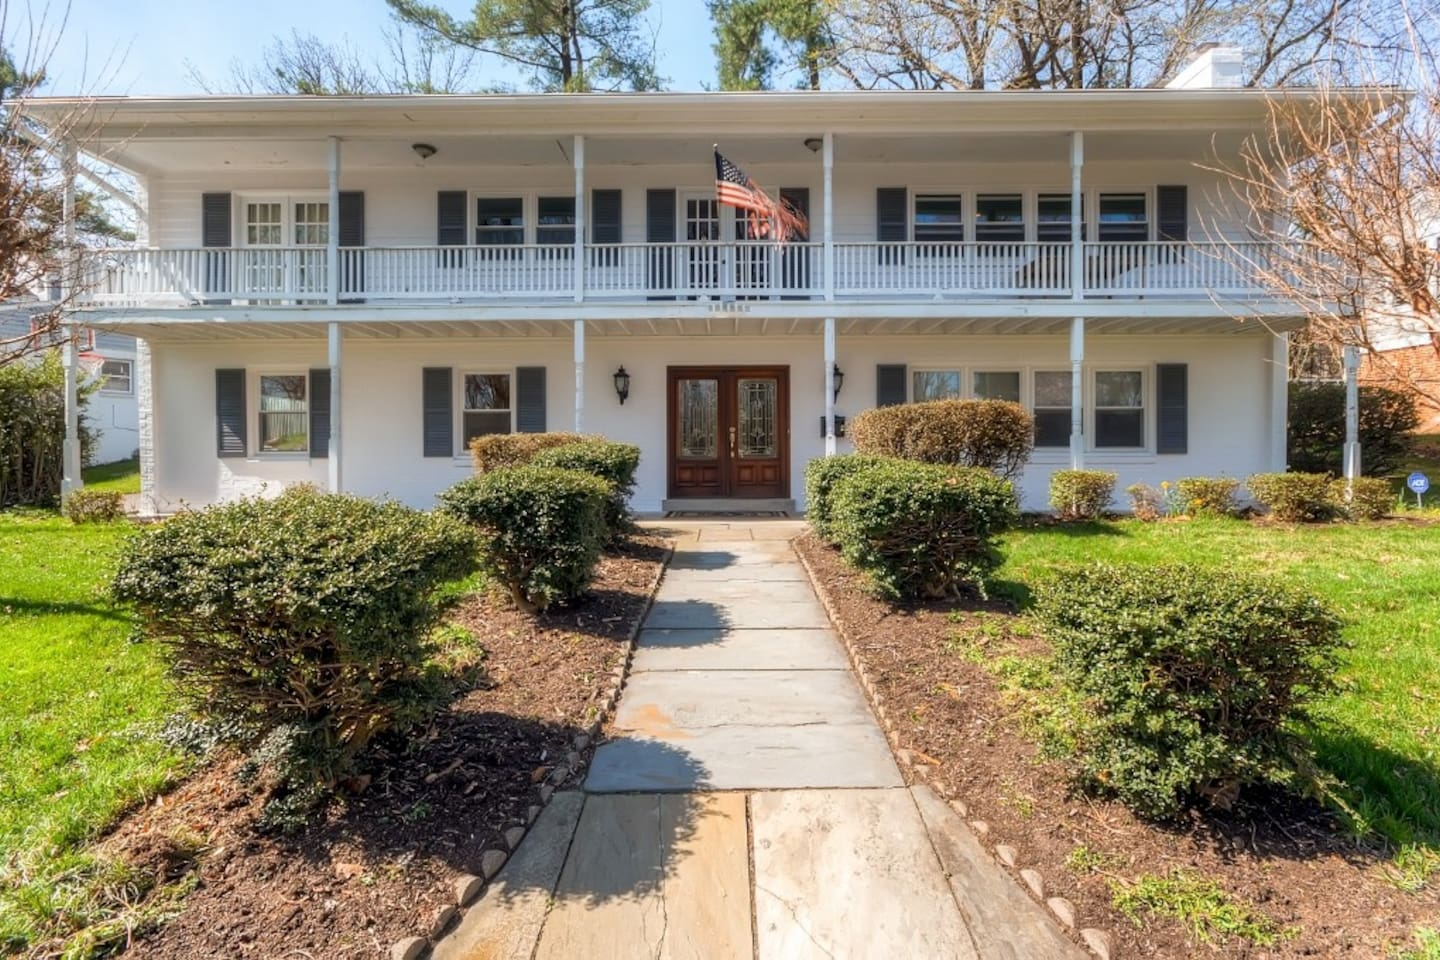 Escape to Arlington and stay at this vacation rental house!